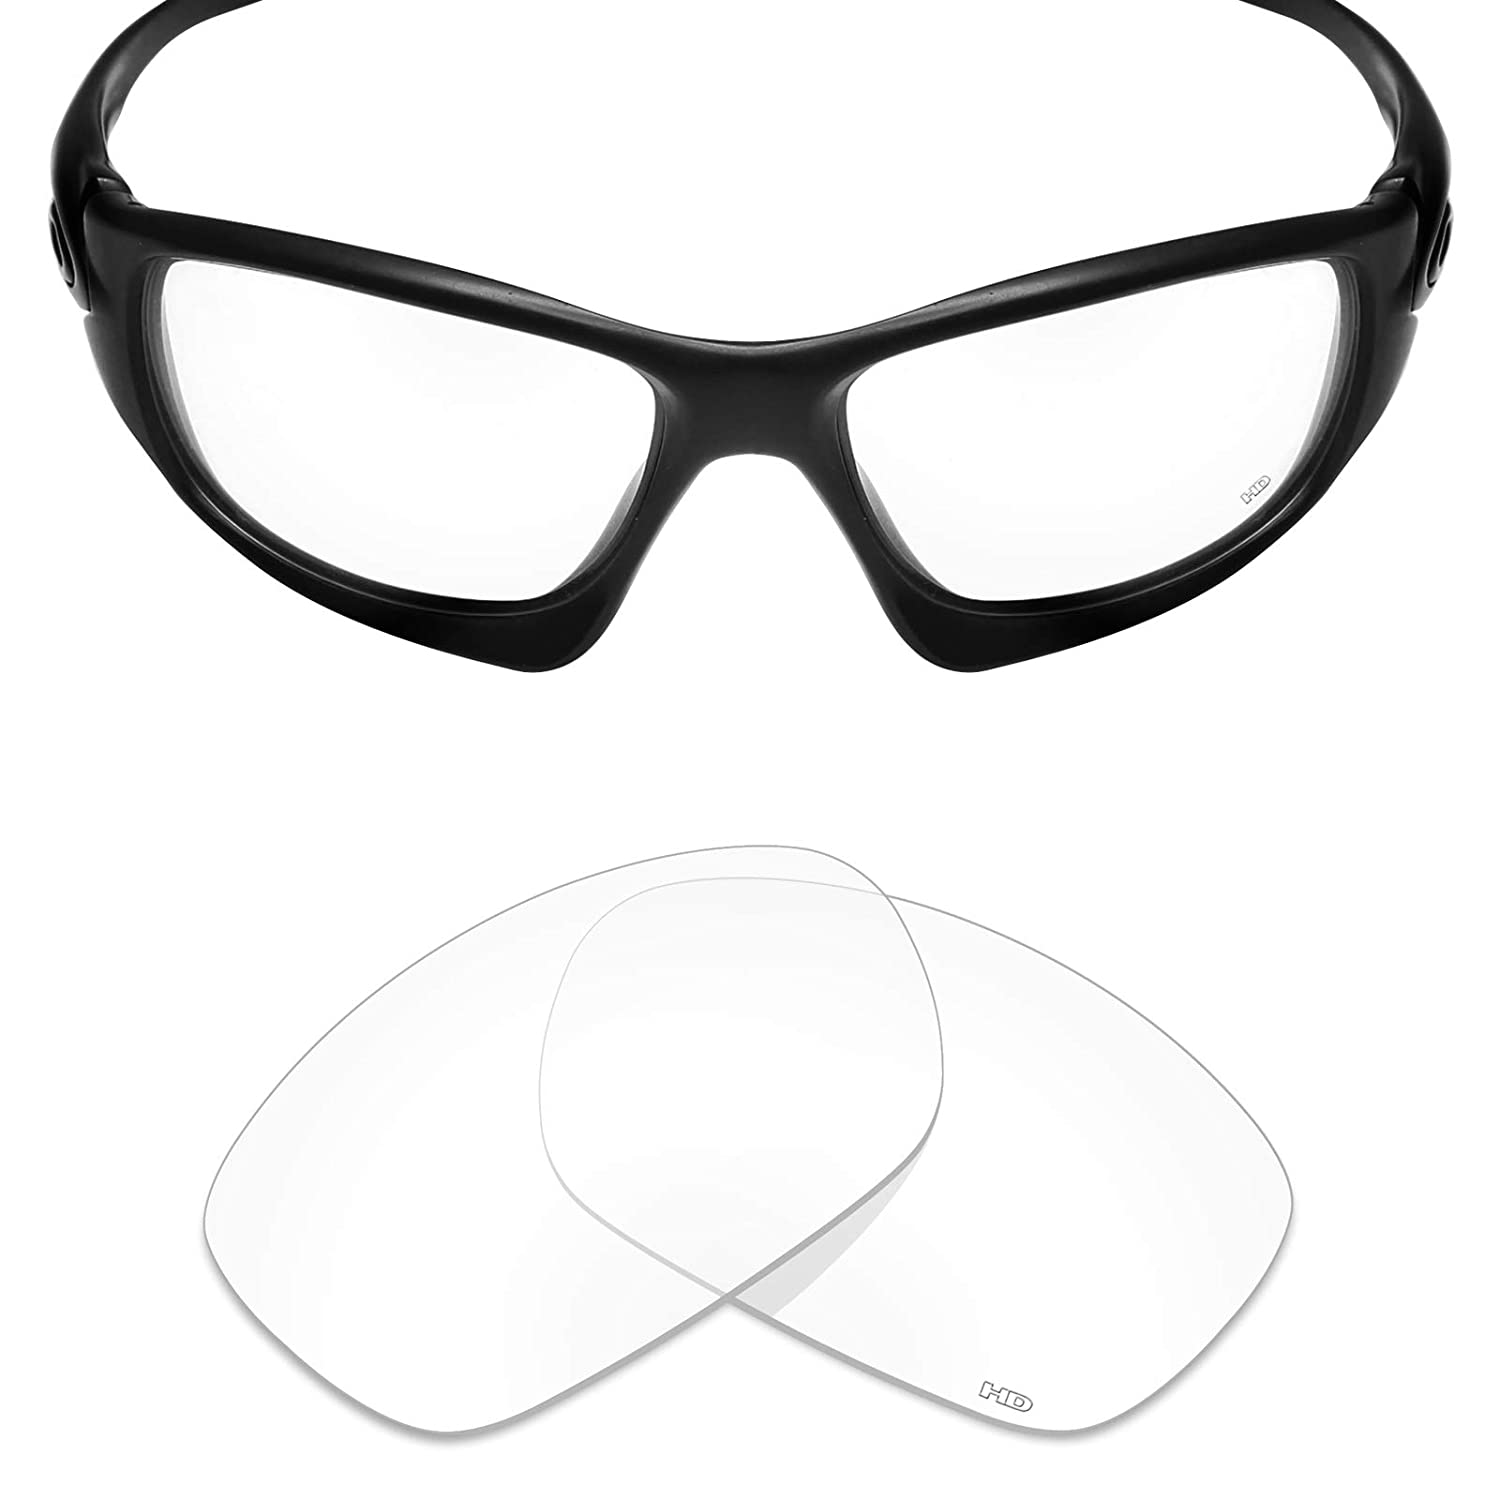 48298f73ef5 Amazon.com  Mryok+ Polarized Replacement Lenses for Oakley Ten X - HD  Clear  Clothing